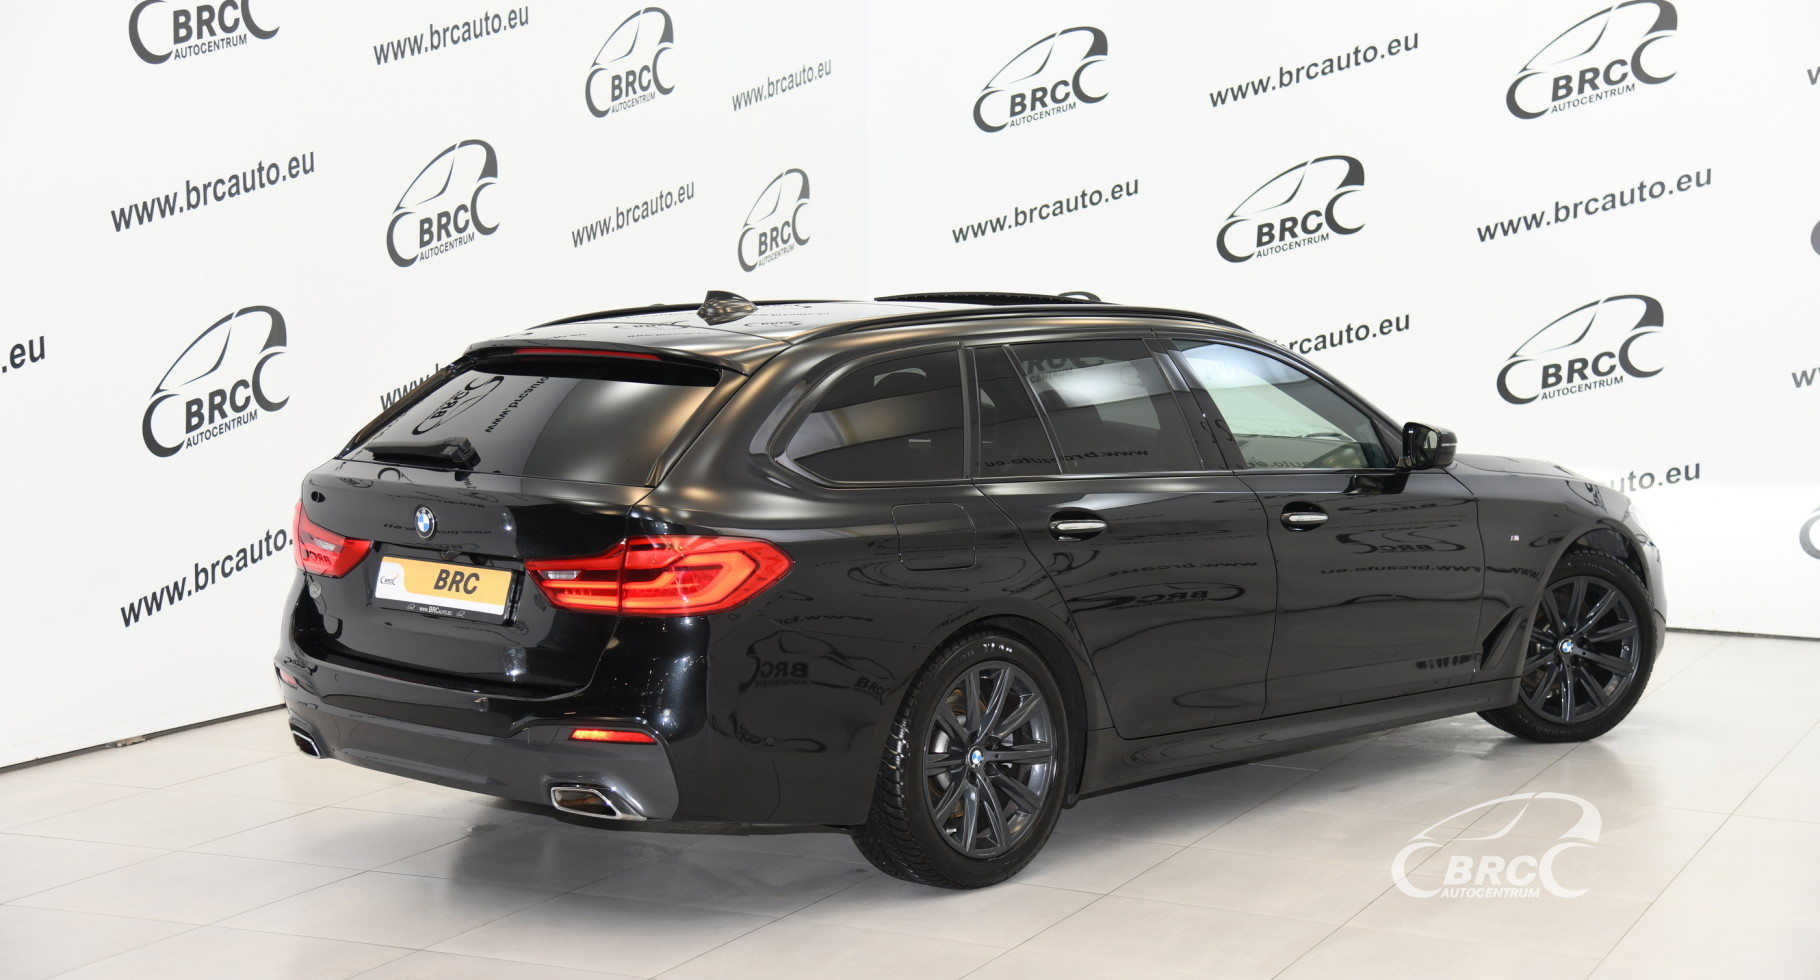 BMW 520 d xDrive M-pack Automatas